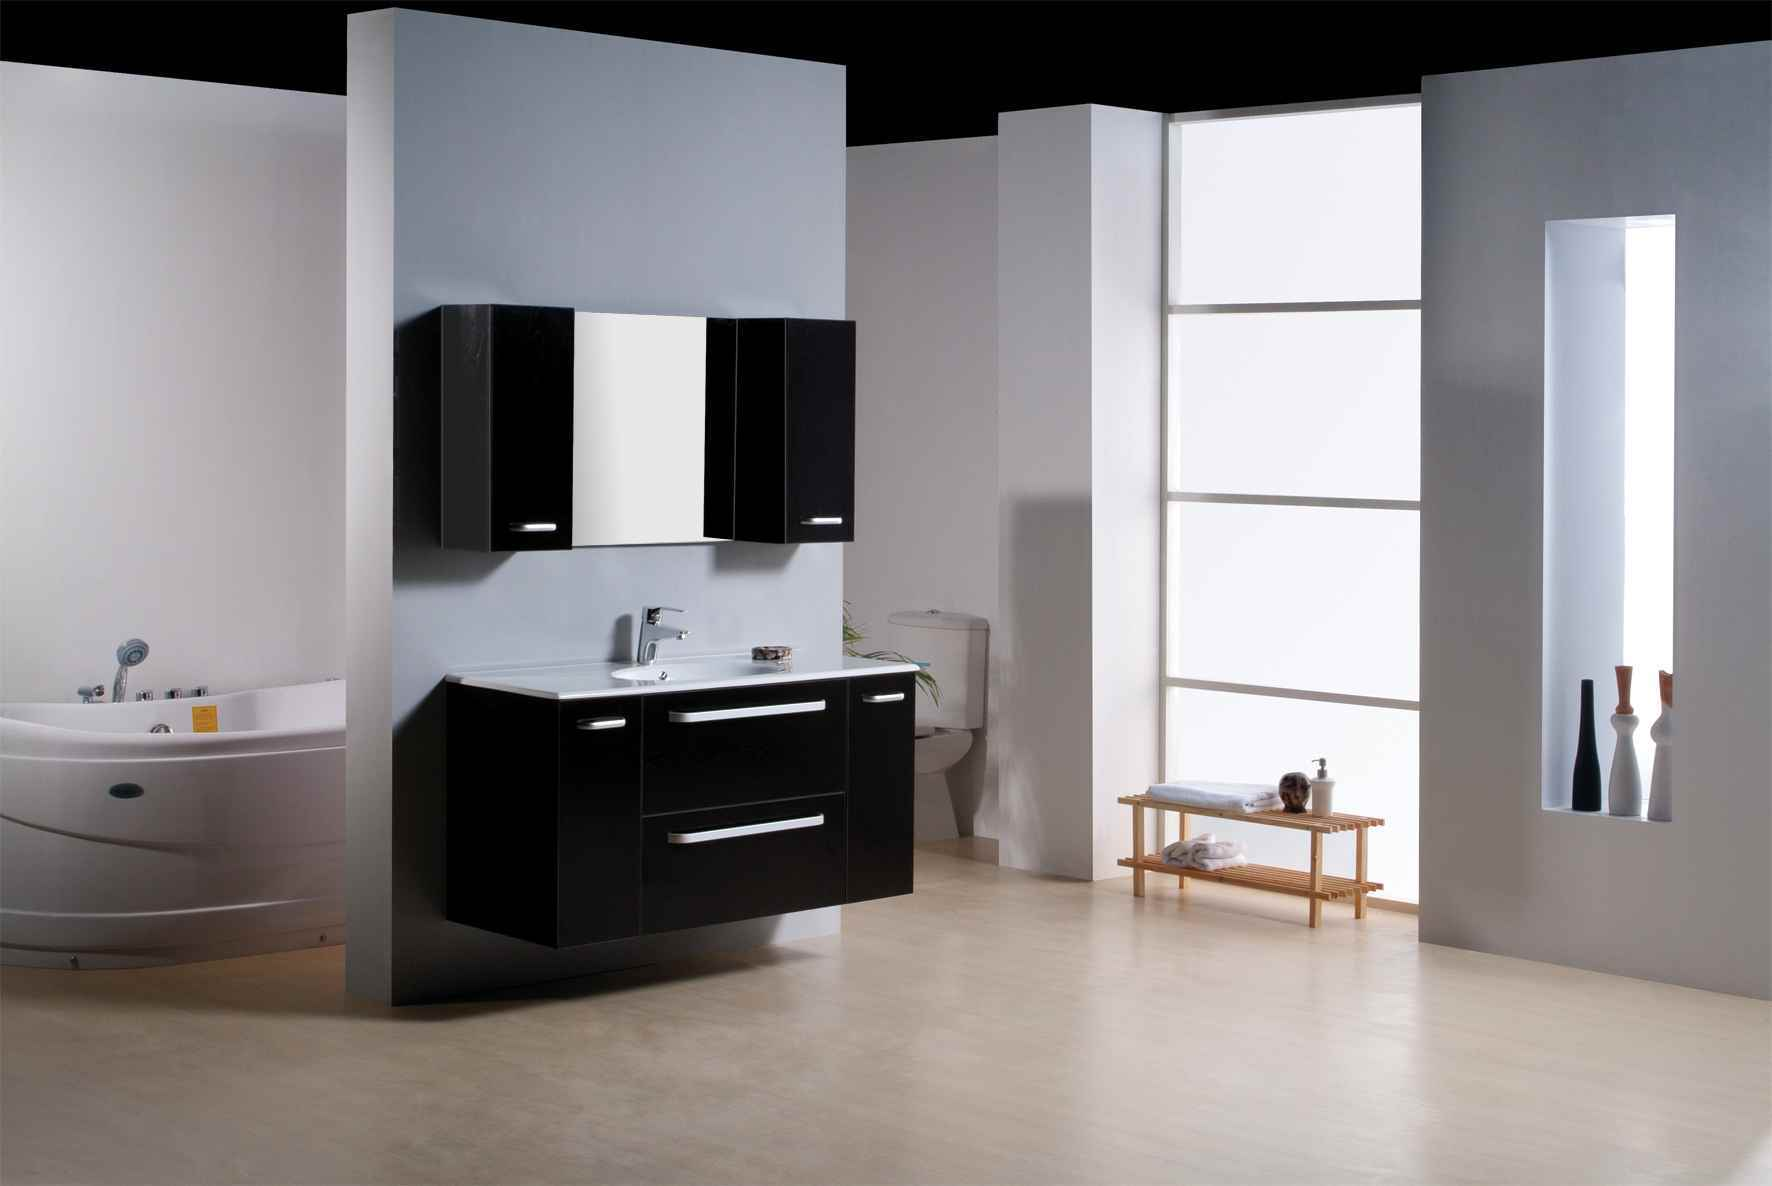 China new design bathroom cabinet china bathroom cabinet sanitary ware New design in bathroom